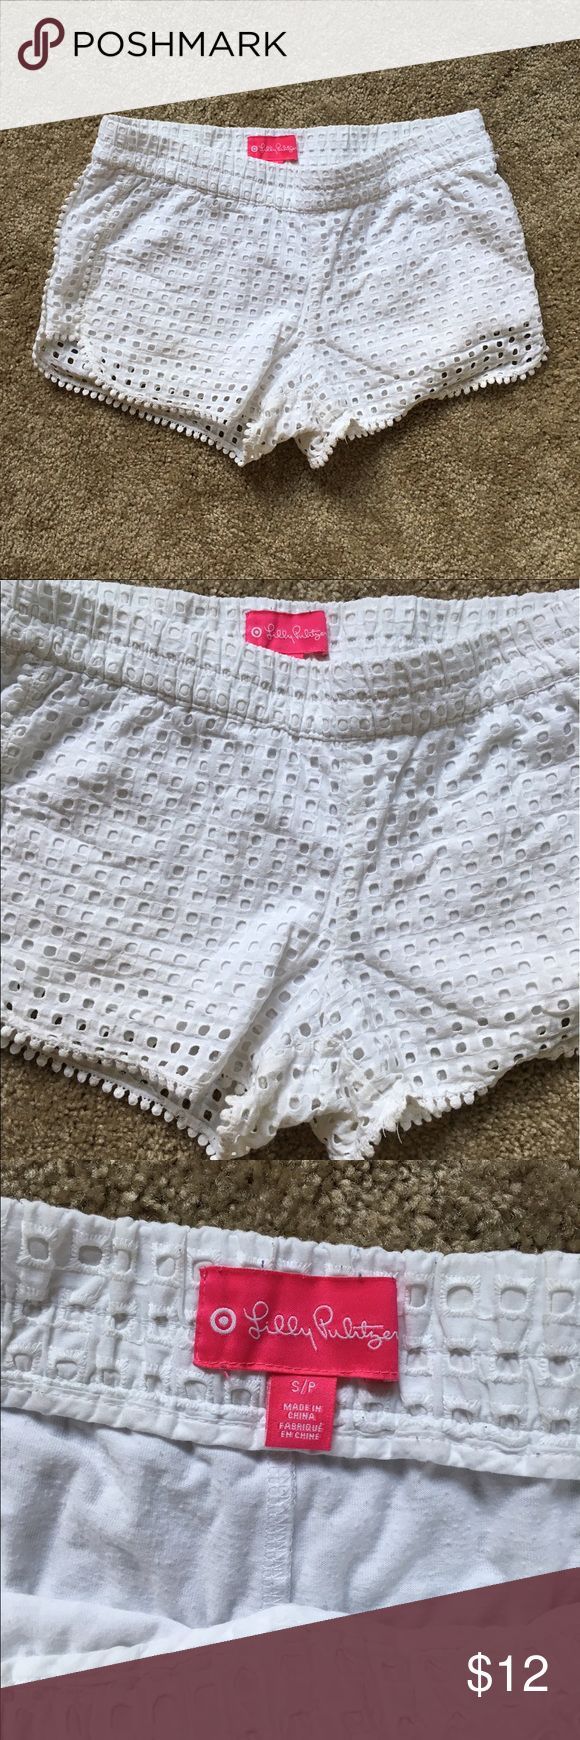 Lilly Pulitzer for Target White Eyelet shorts Lilly Pulitzer for Target white eyelet shorts. Size small. Good condition. Non smoking home. Lilly Pulitzer for Target Shorts